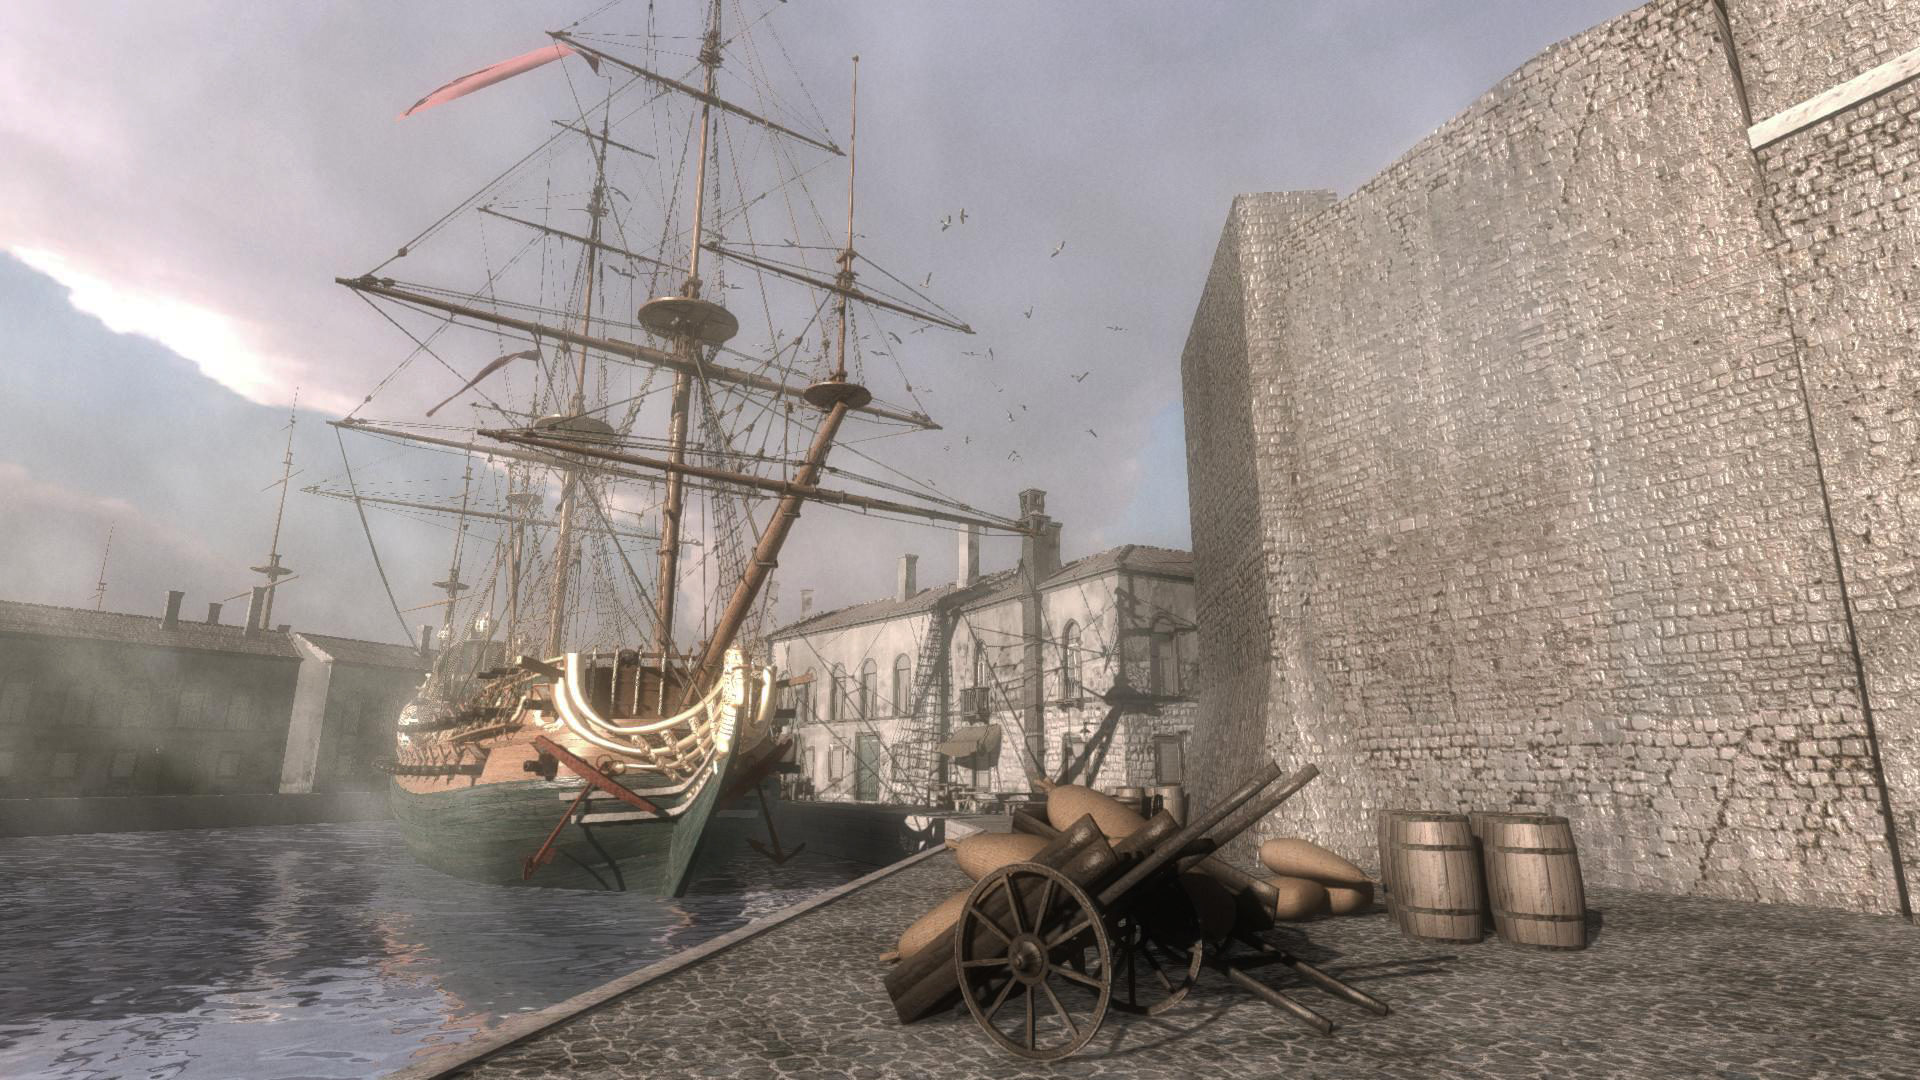 virtual reality rebuild of anne ship in harbour